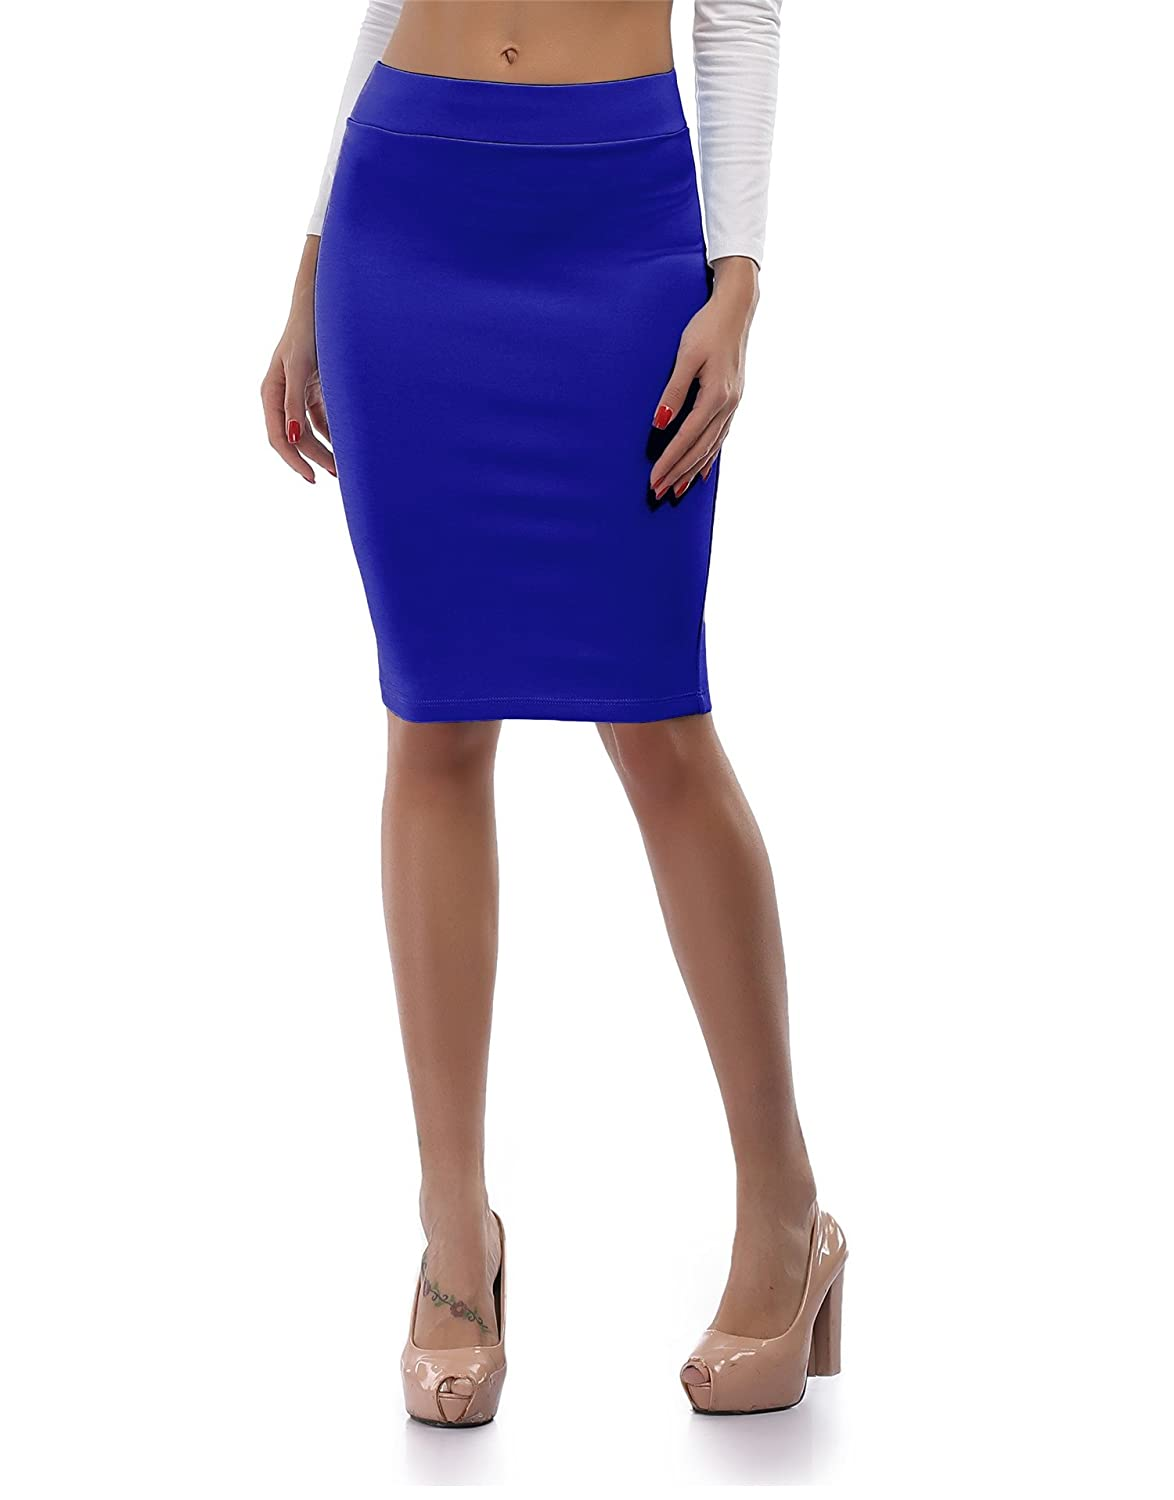 a31ca91ae Women\'s Gorgeous Stretch Short Pencil Skirts, Pull On Design, Fitted. Made  from comfortable,strethcy,smooth and not easilly wrinkle high quality yet  ...